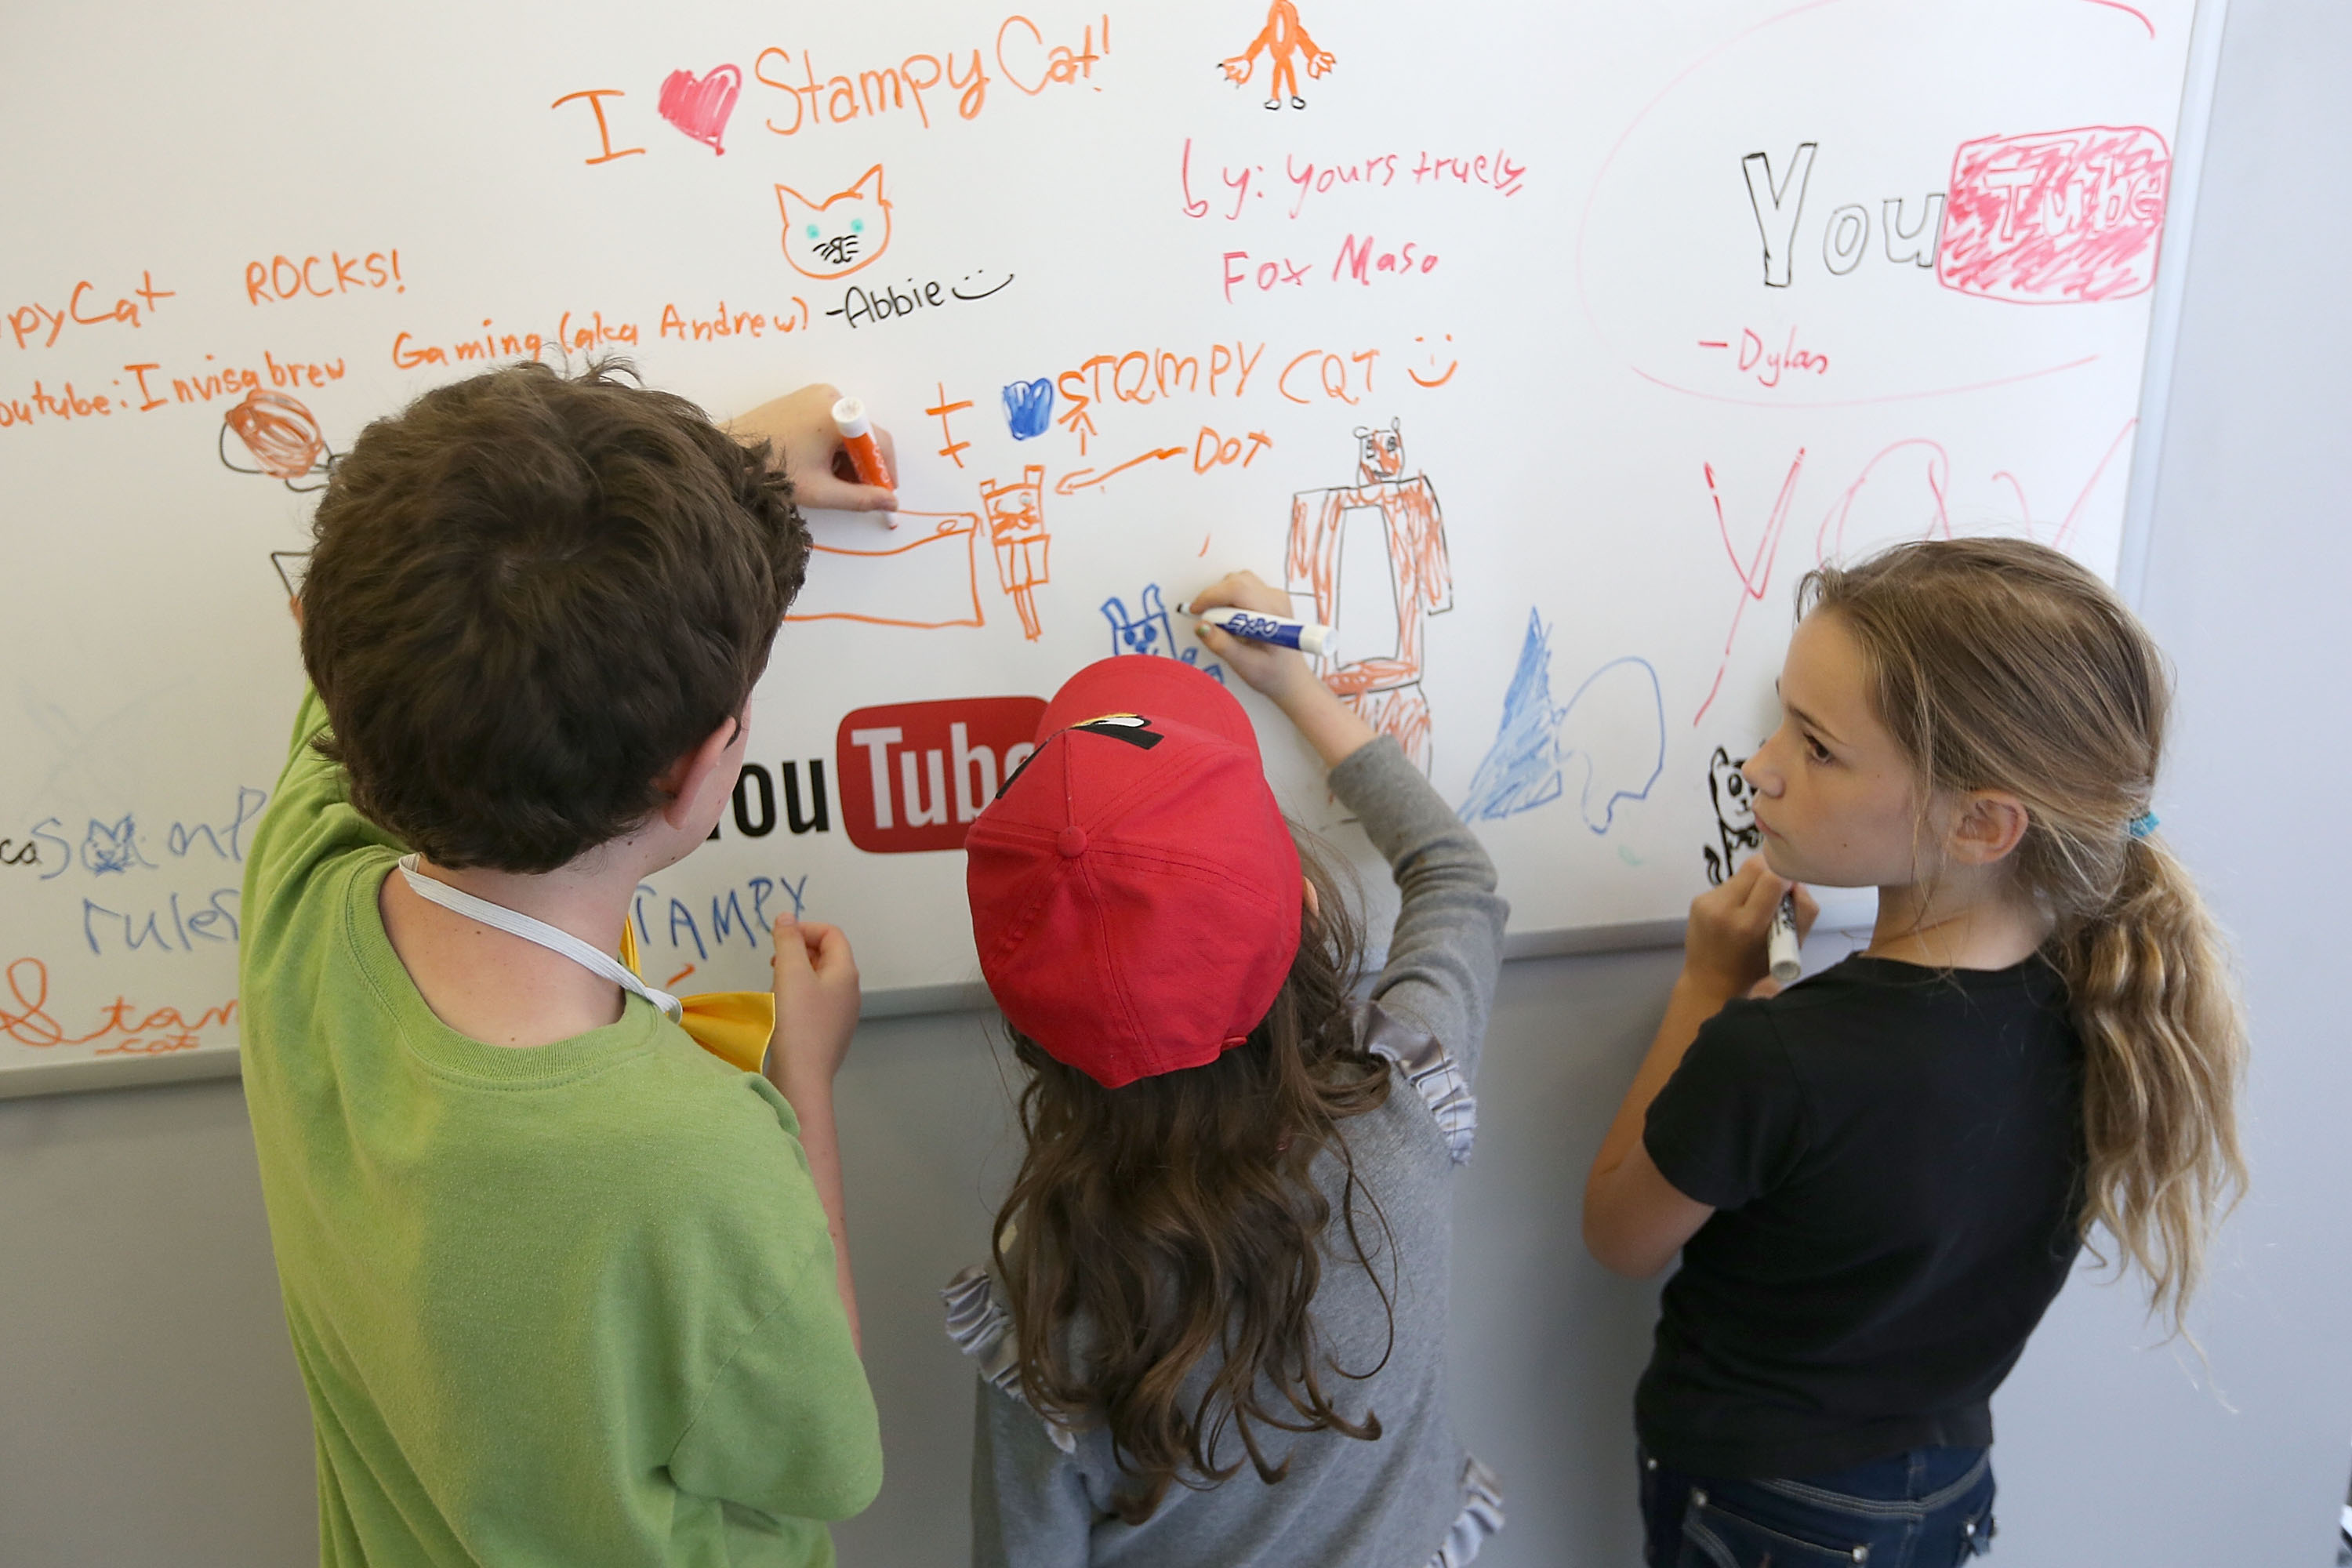 Three children draw on a whiteboard at a YourTube launch event.